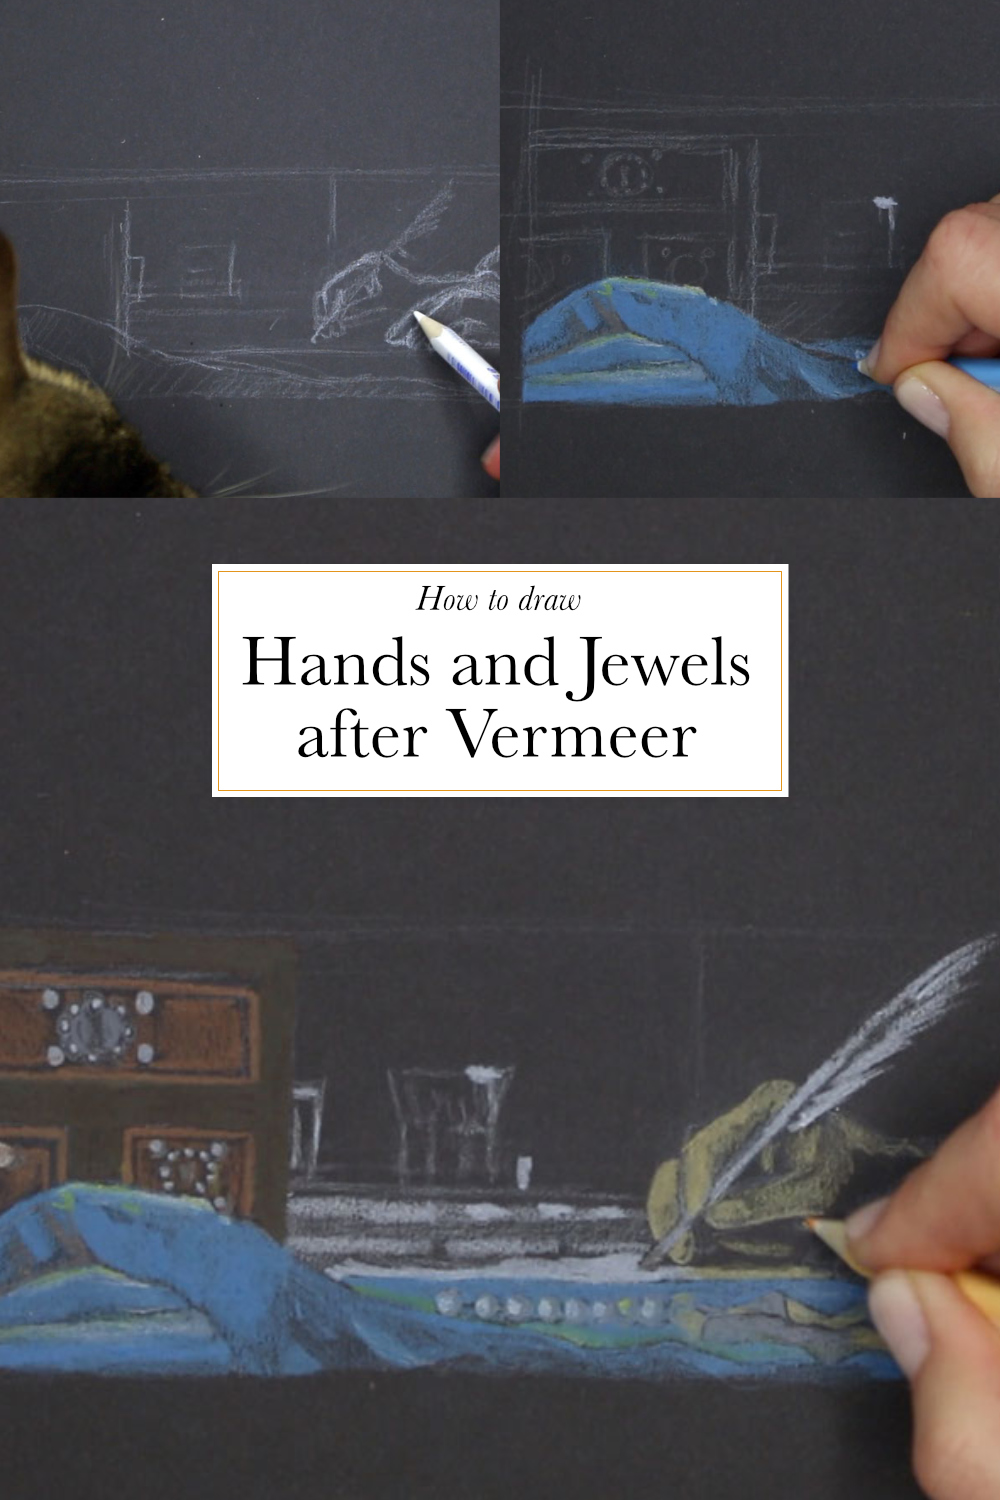 How to draw hands and jewels after Vermeer  | The Daily Atelier